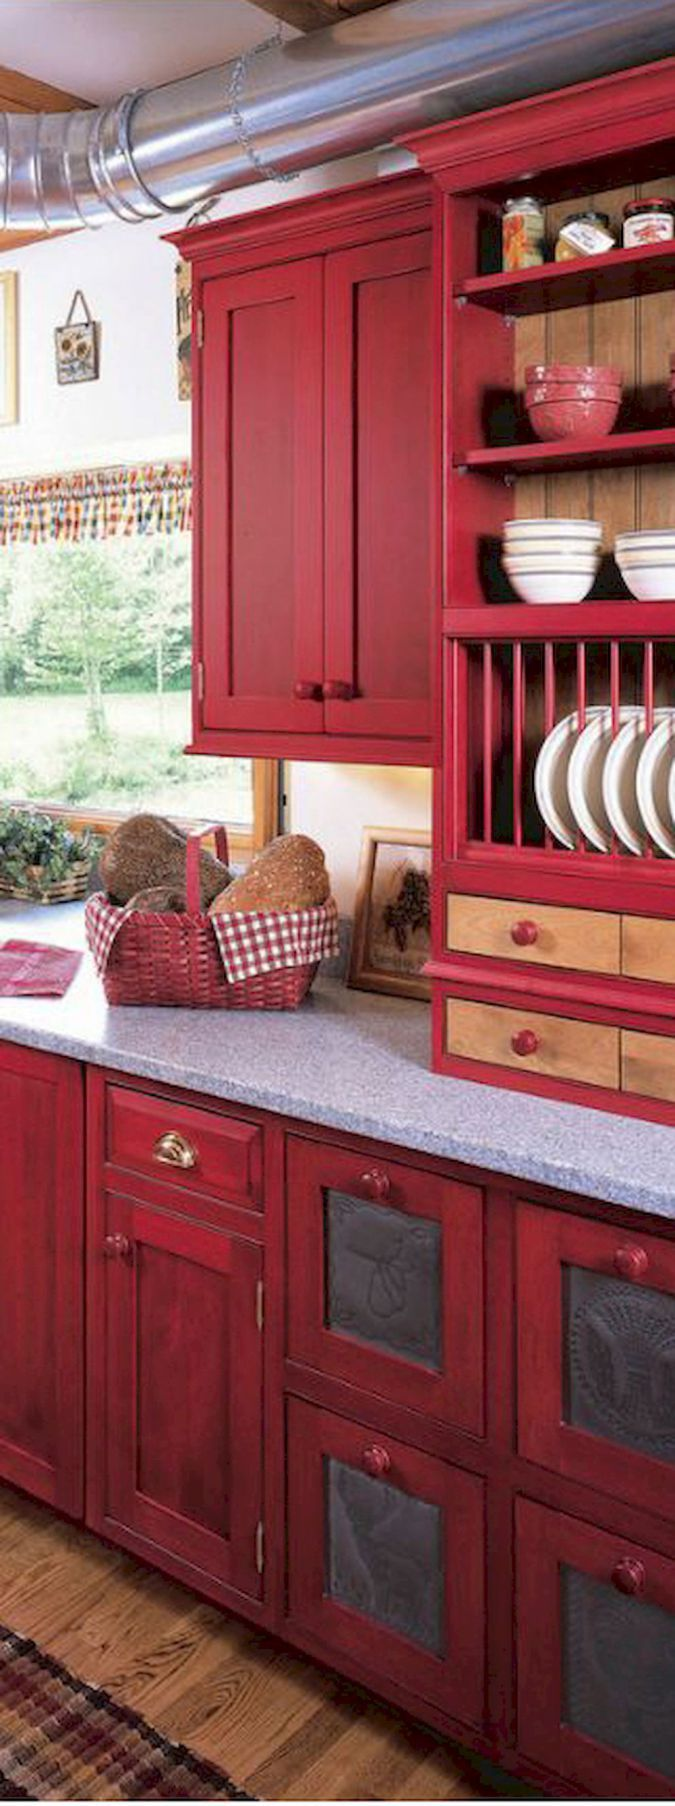 80 stunning farmhouse kitchen design and decor ideas with images red kitchen cabinets on farmhouse kitchen hutch id=39746